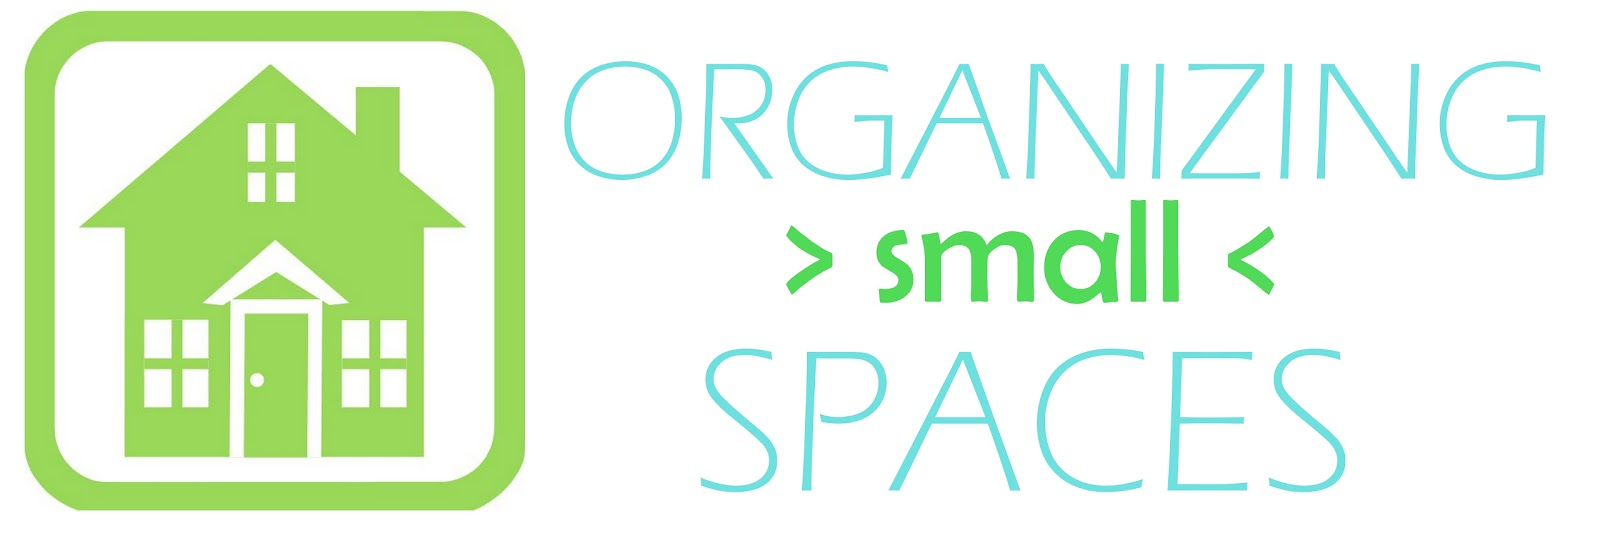 Operation organization professional organizer peachtree city newnan fayetteville senoia - Organization solutions for small spaces paint ...